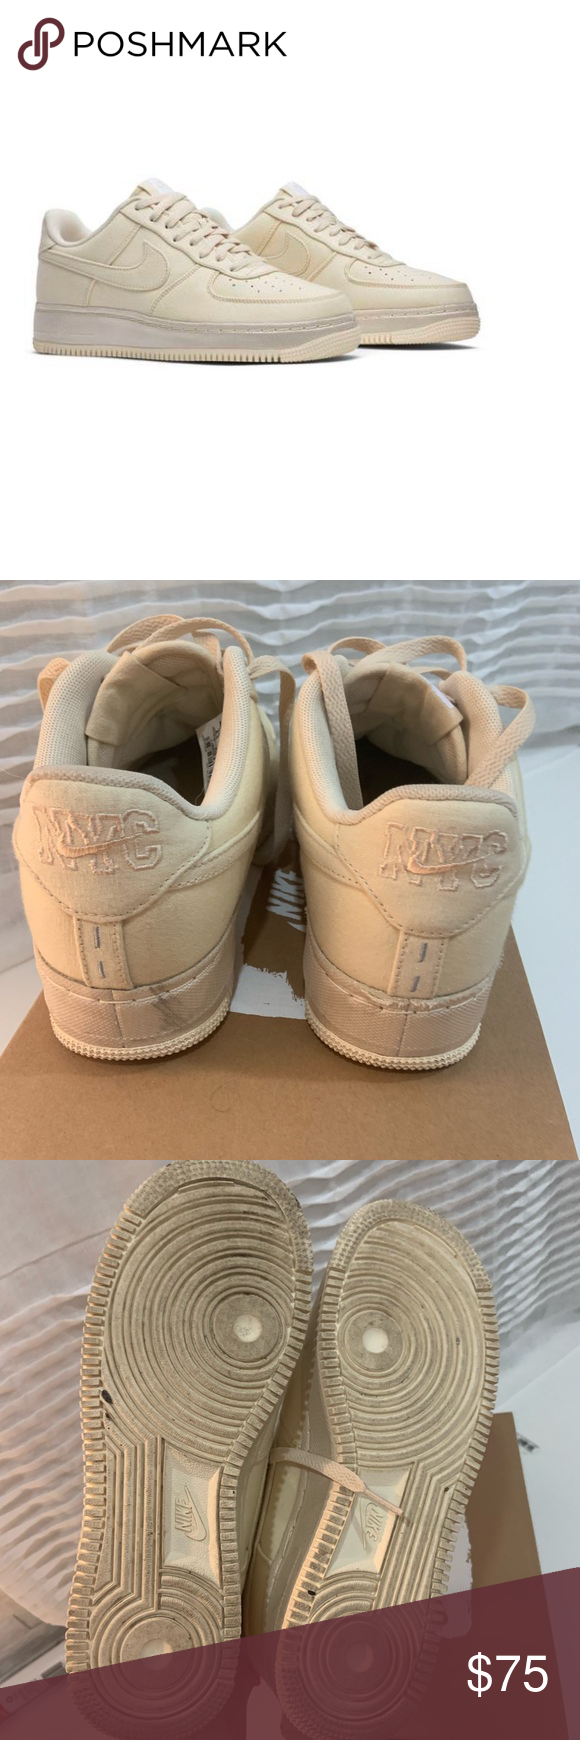 air force 1 low nyc procell wildcard